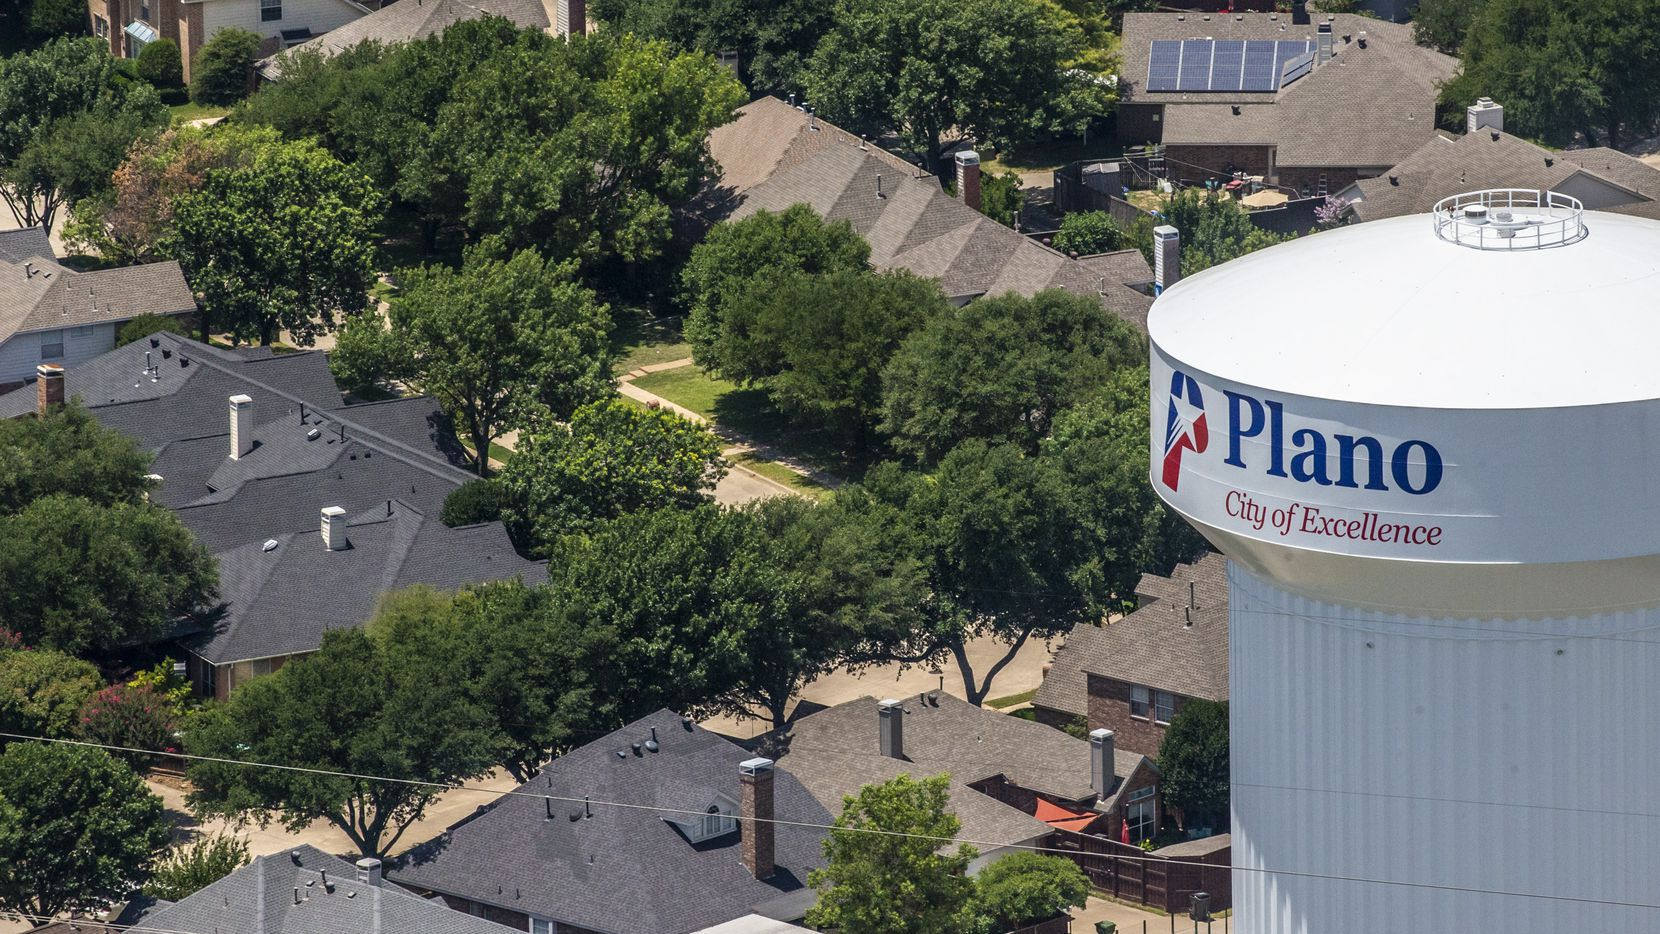 A Plano water tower in Plano, Texas, on Thursday, June 18, 2020. (Lynda M. Gonzalez/The Dallas Morning News)